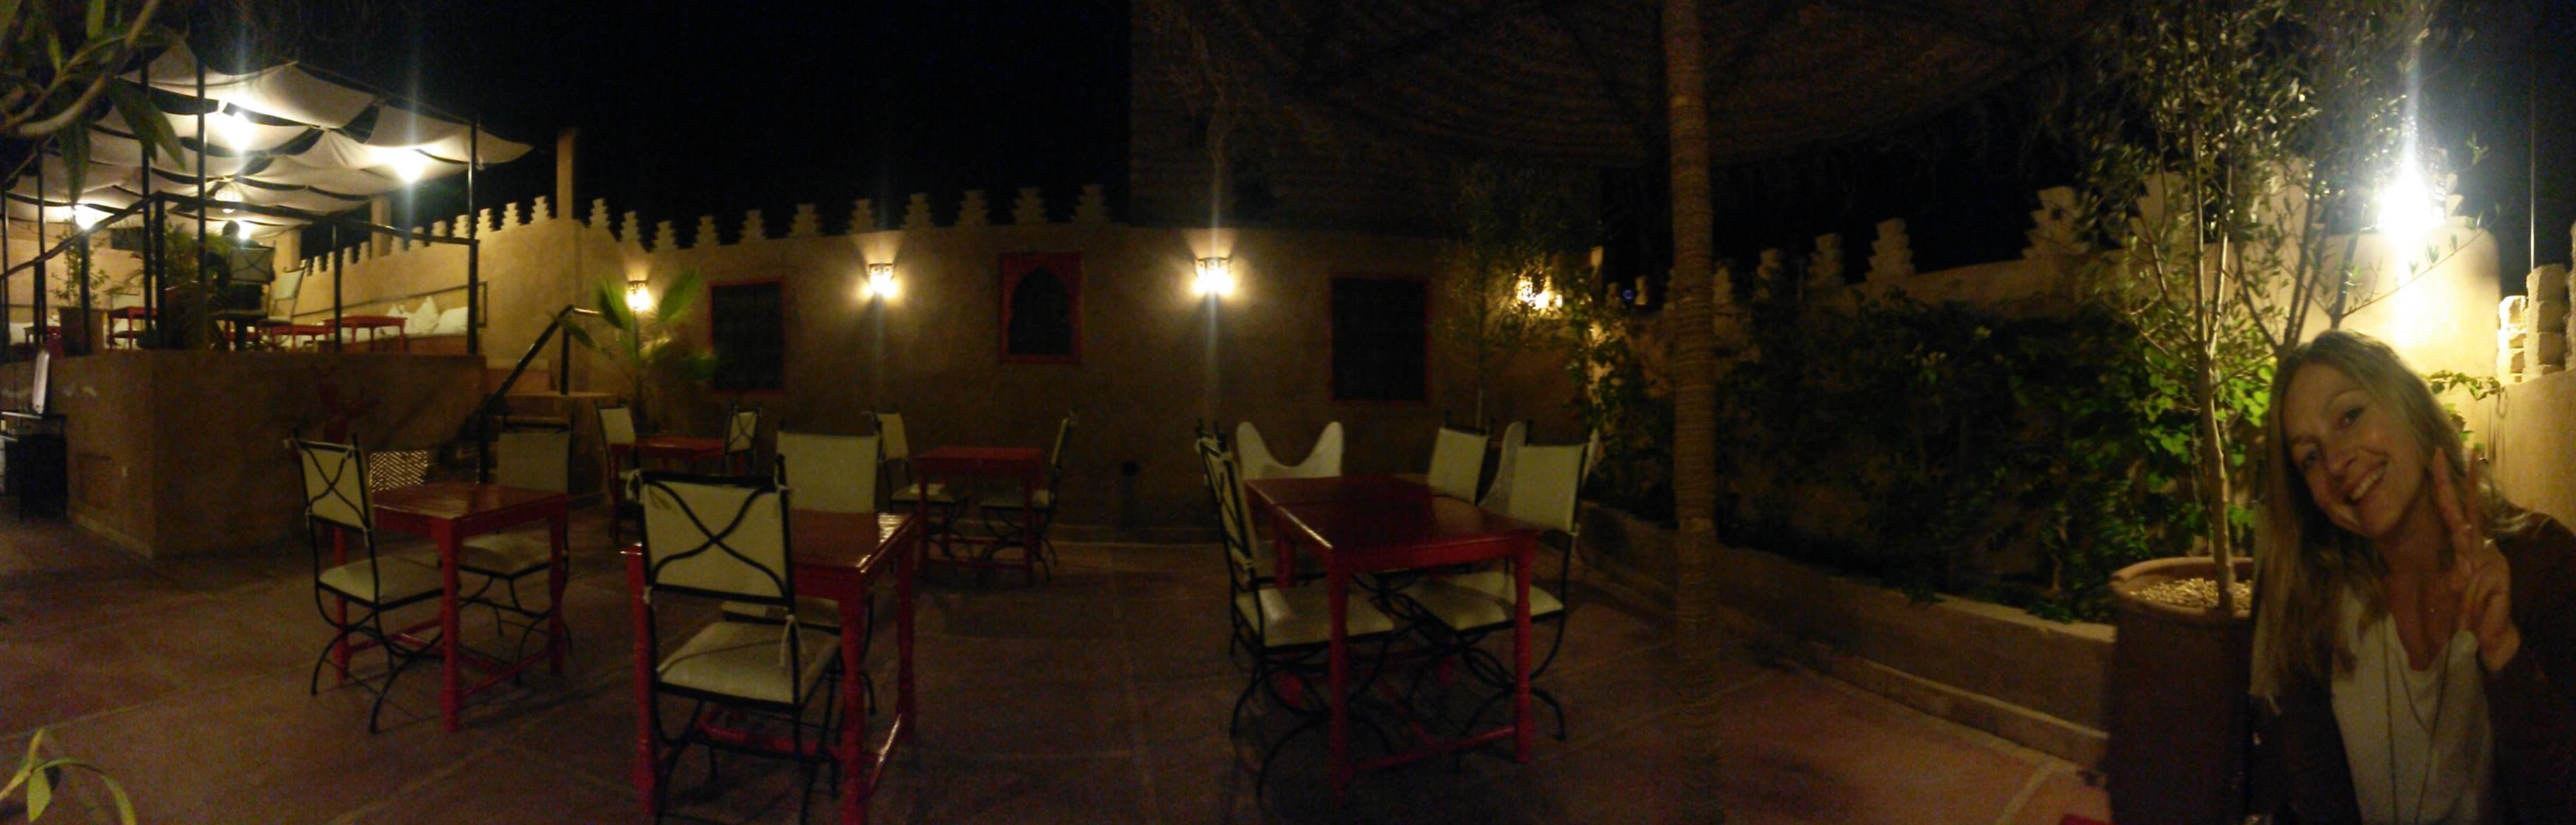 Photo 1: Le Kui-zin, Le resto typique de Marrakesh